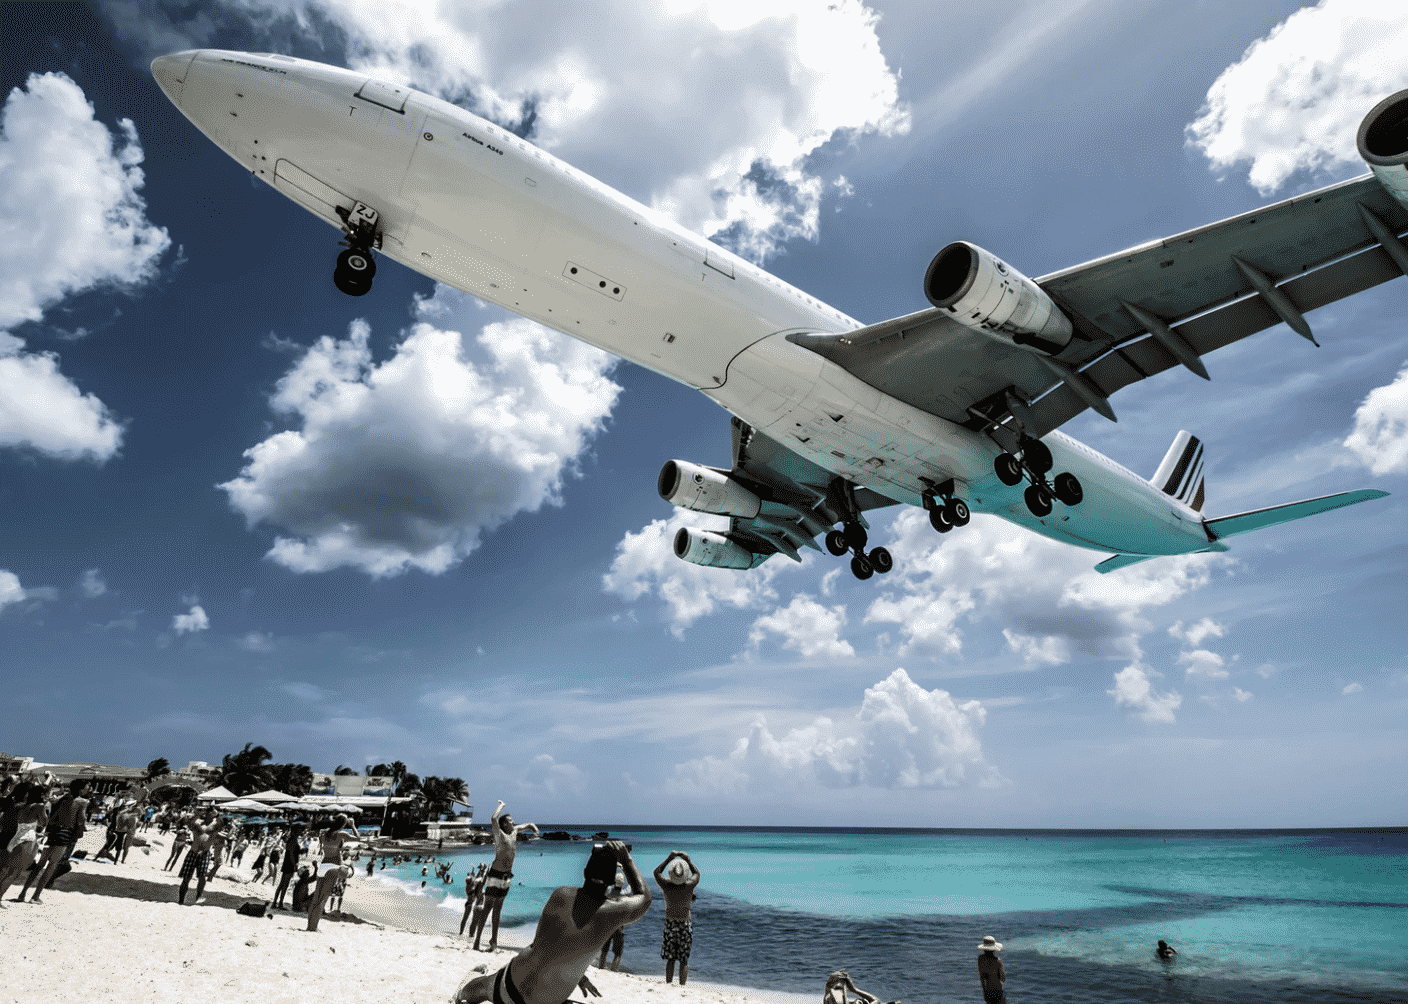 Things to do in Saint Maarten